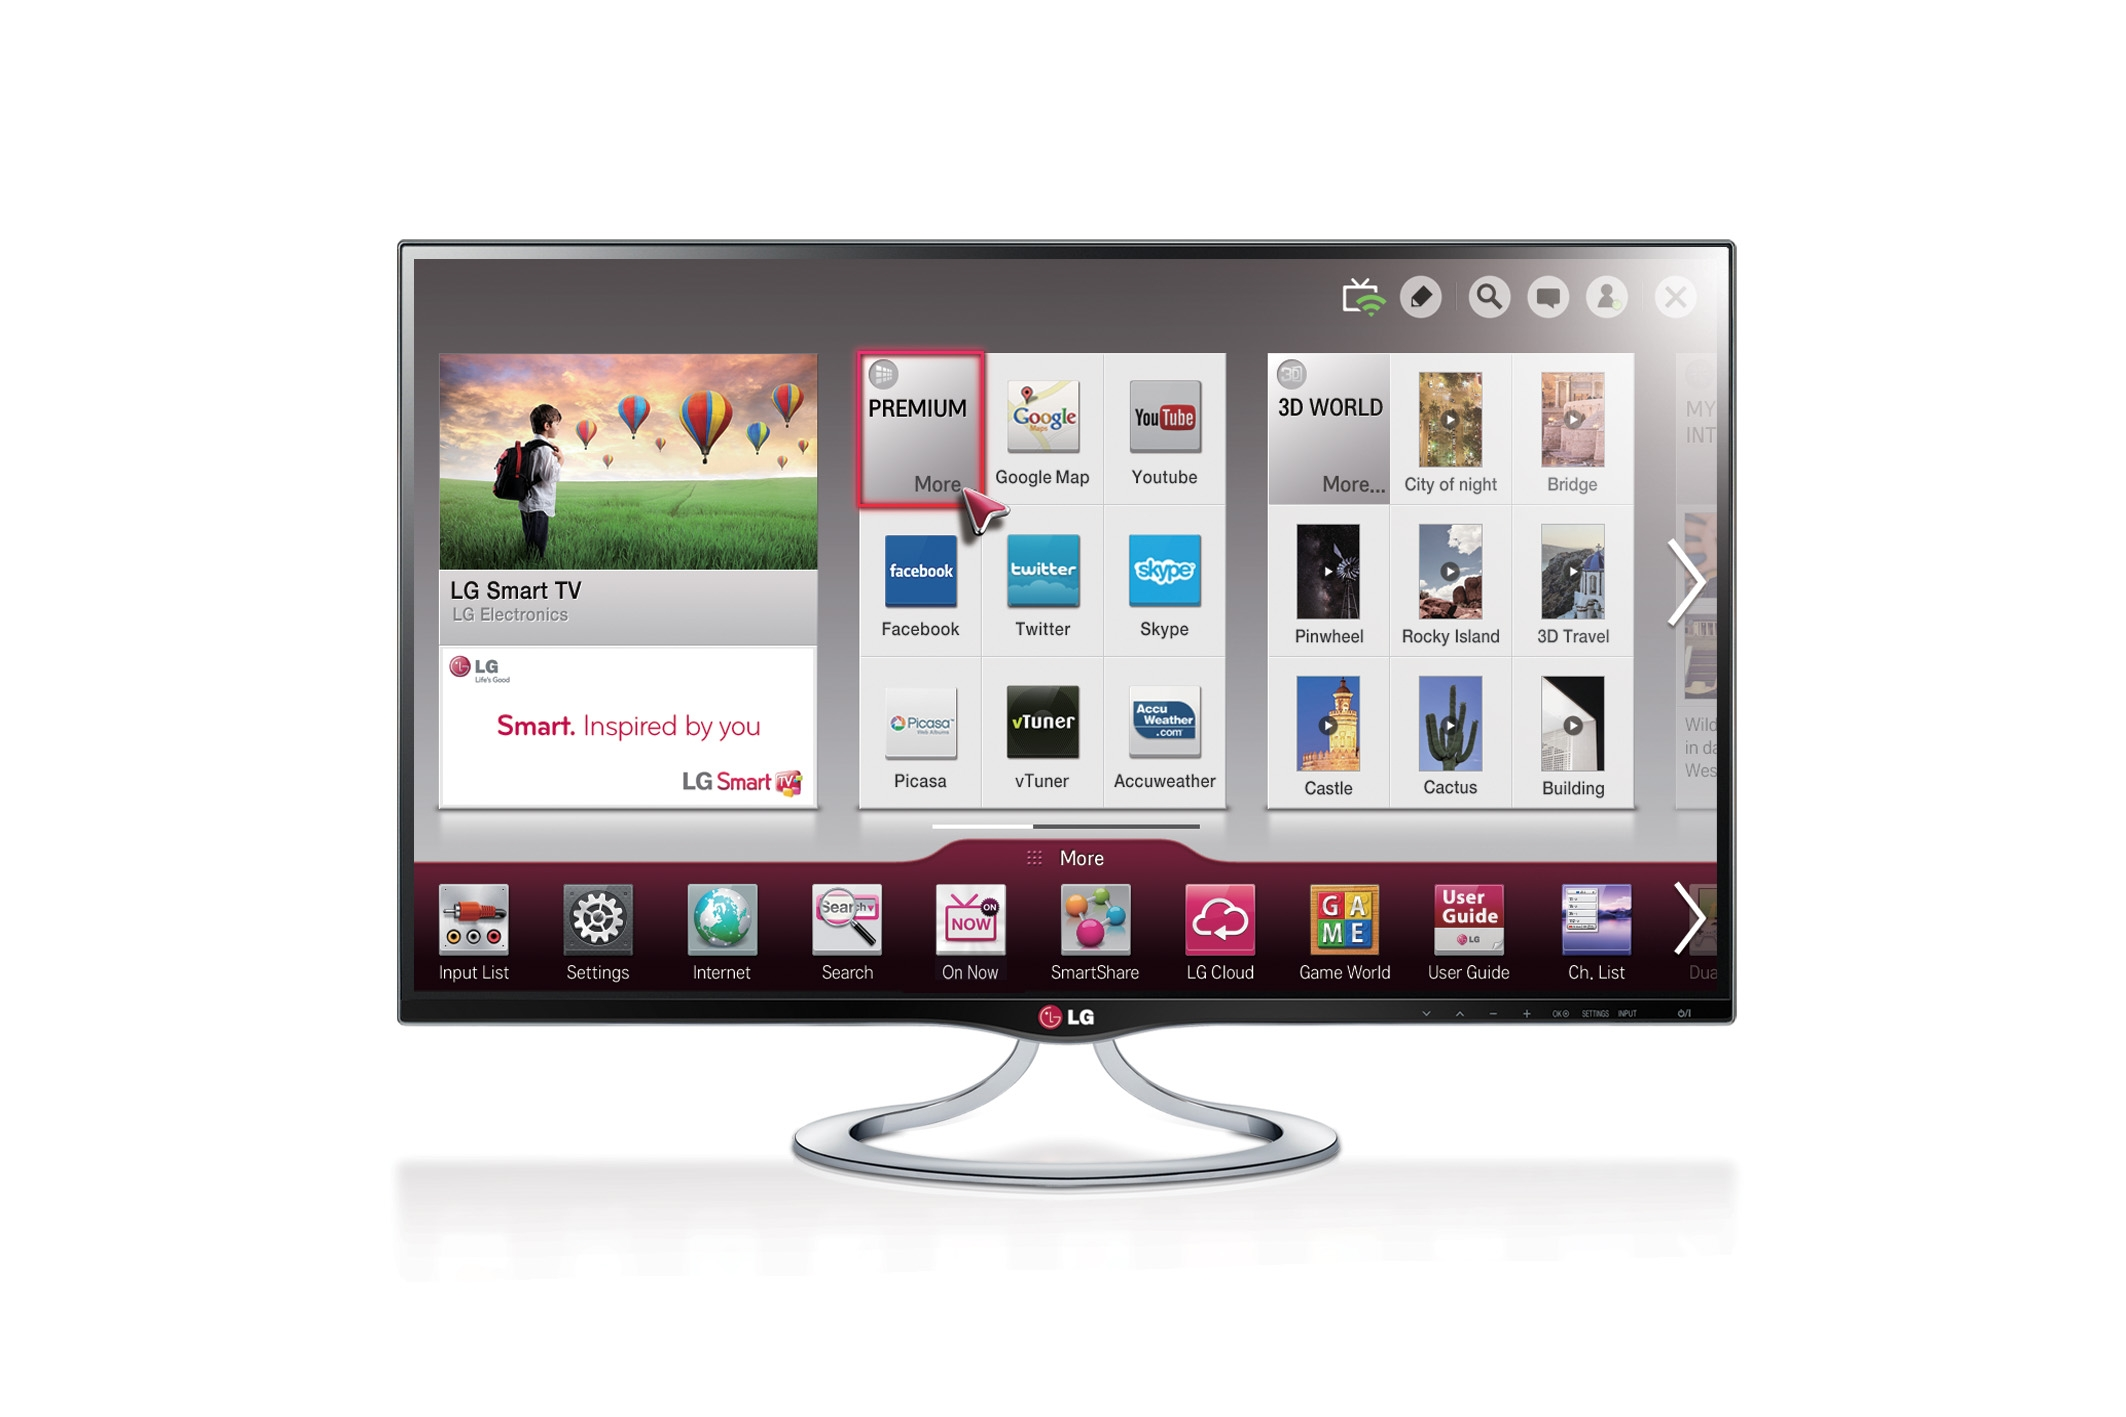 LG Smart LED TV, Screen Size: 32 Inch, Rs 22000 /piece